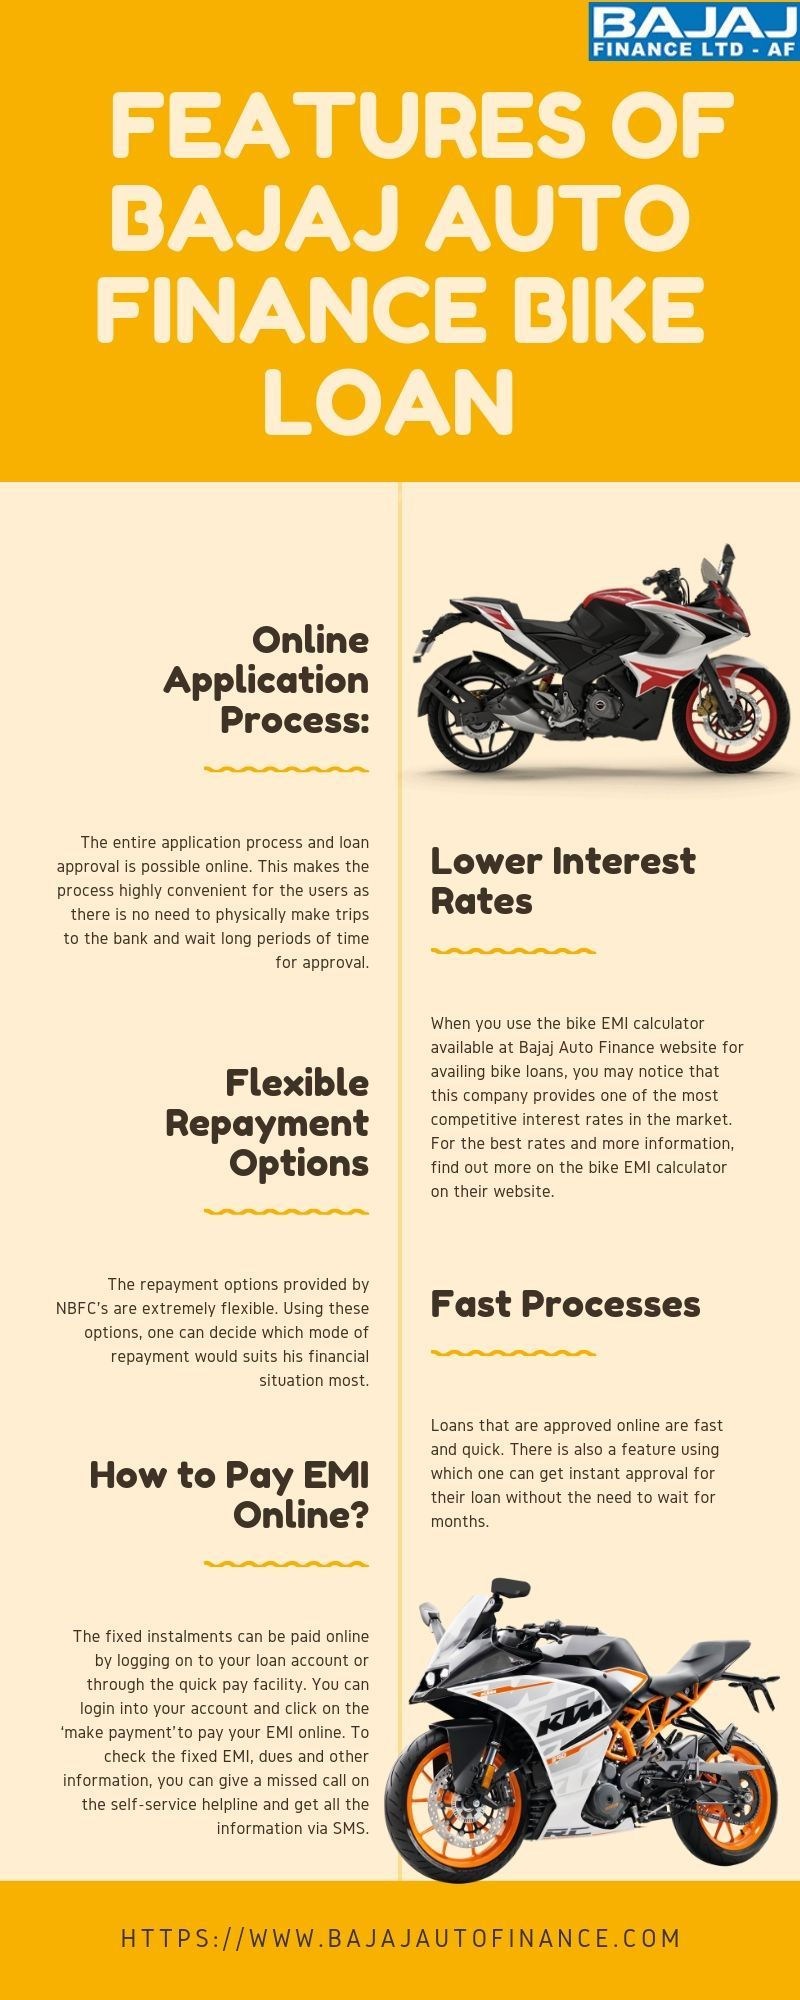 There Are Two Types Of Loans Offered By Bajaj Auto Finance Bike